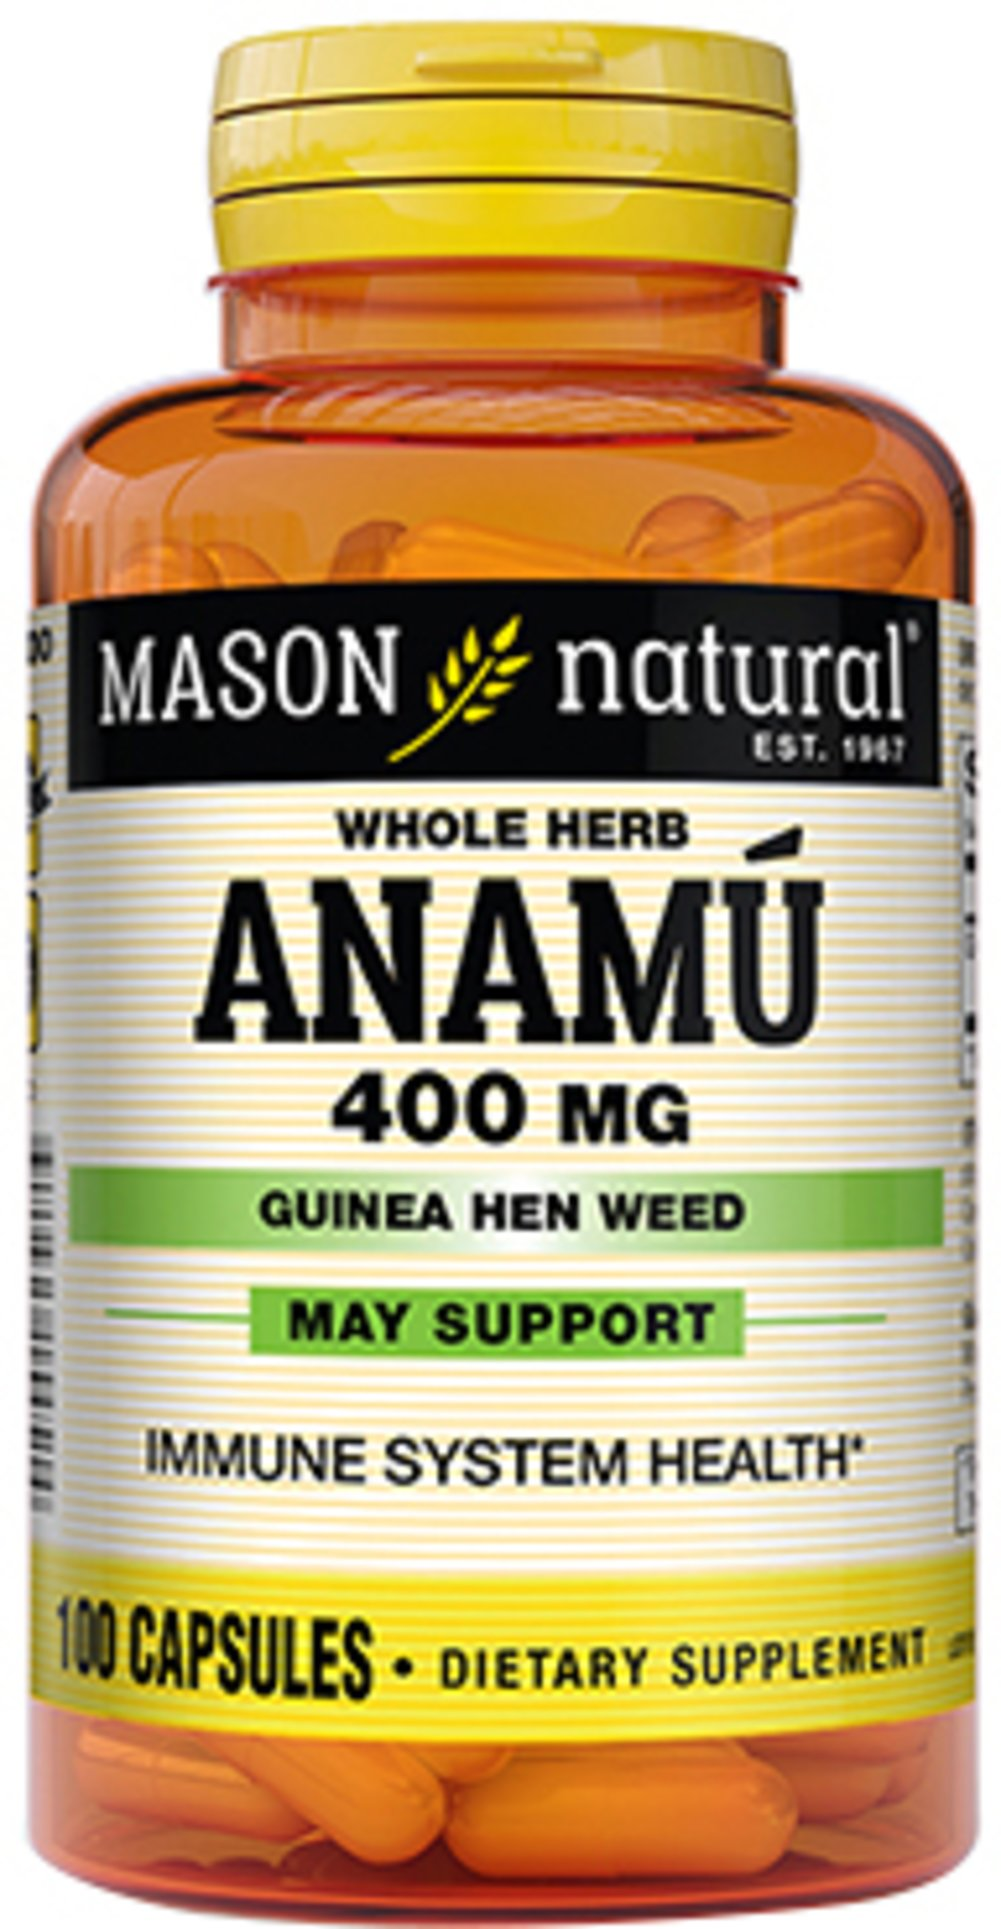 Anamu 400 mg <p><strong>From the Manufacturer's Label:</strong></p><p>Anamu 400 mg is manufactured by Mason Naturals.</p> 100 Capsules 400 mg